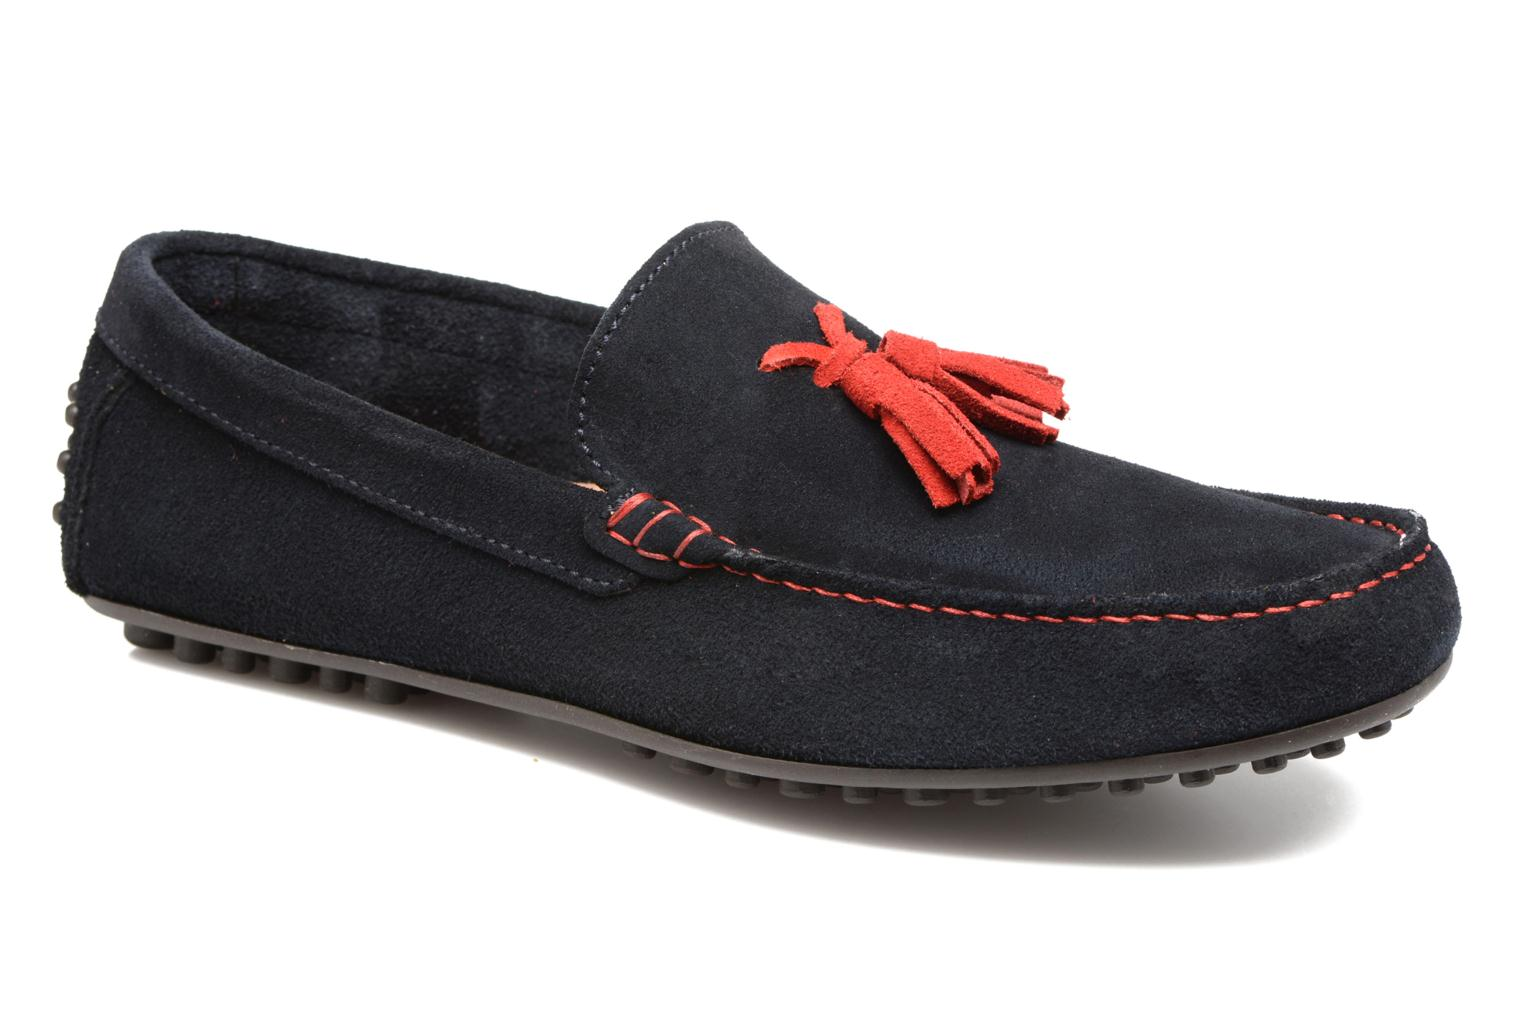 Southampt Navy / Pured